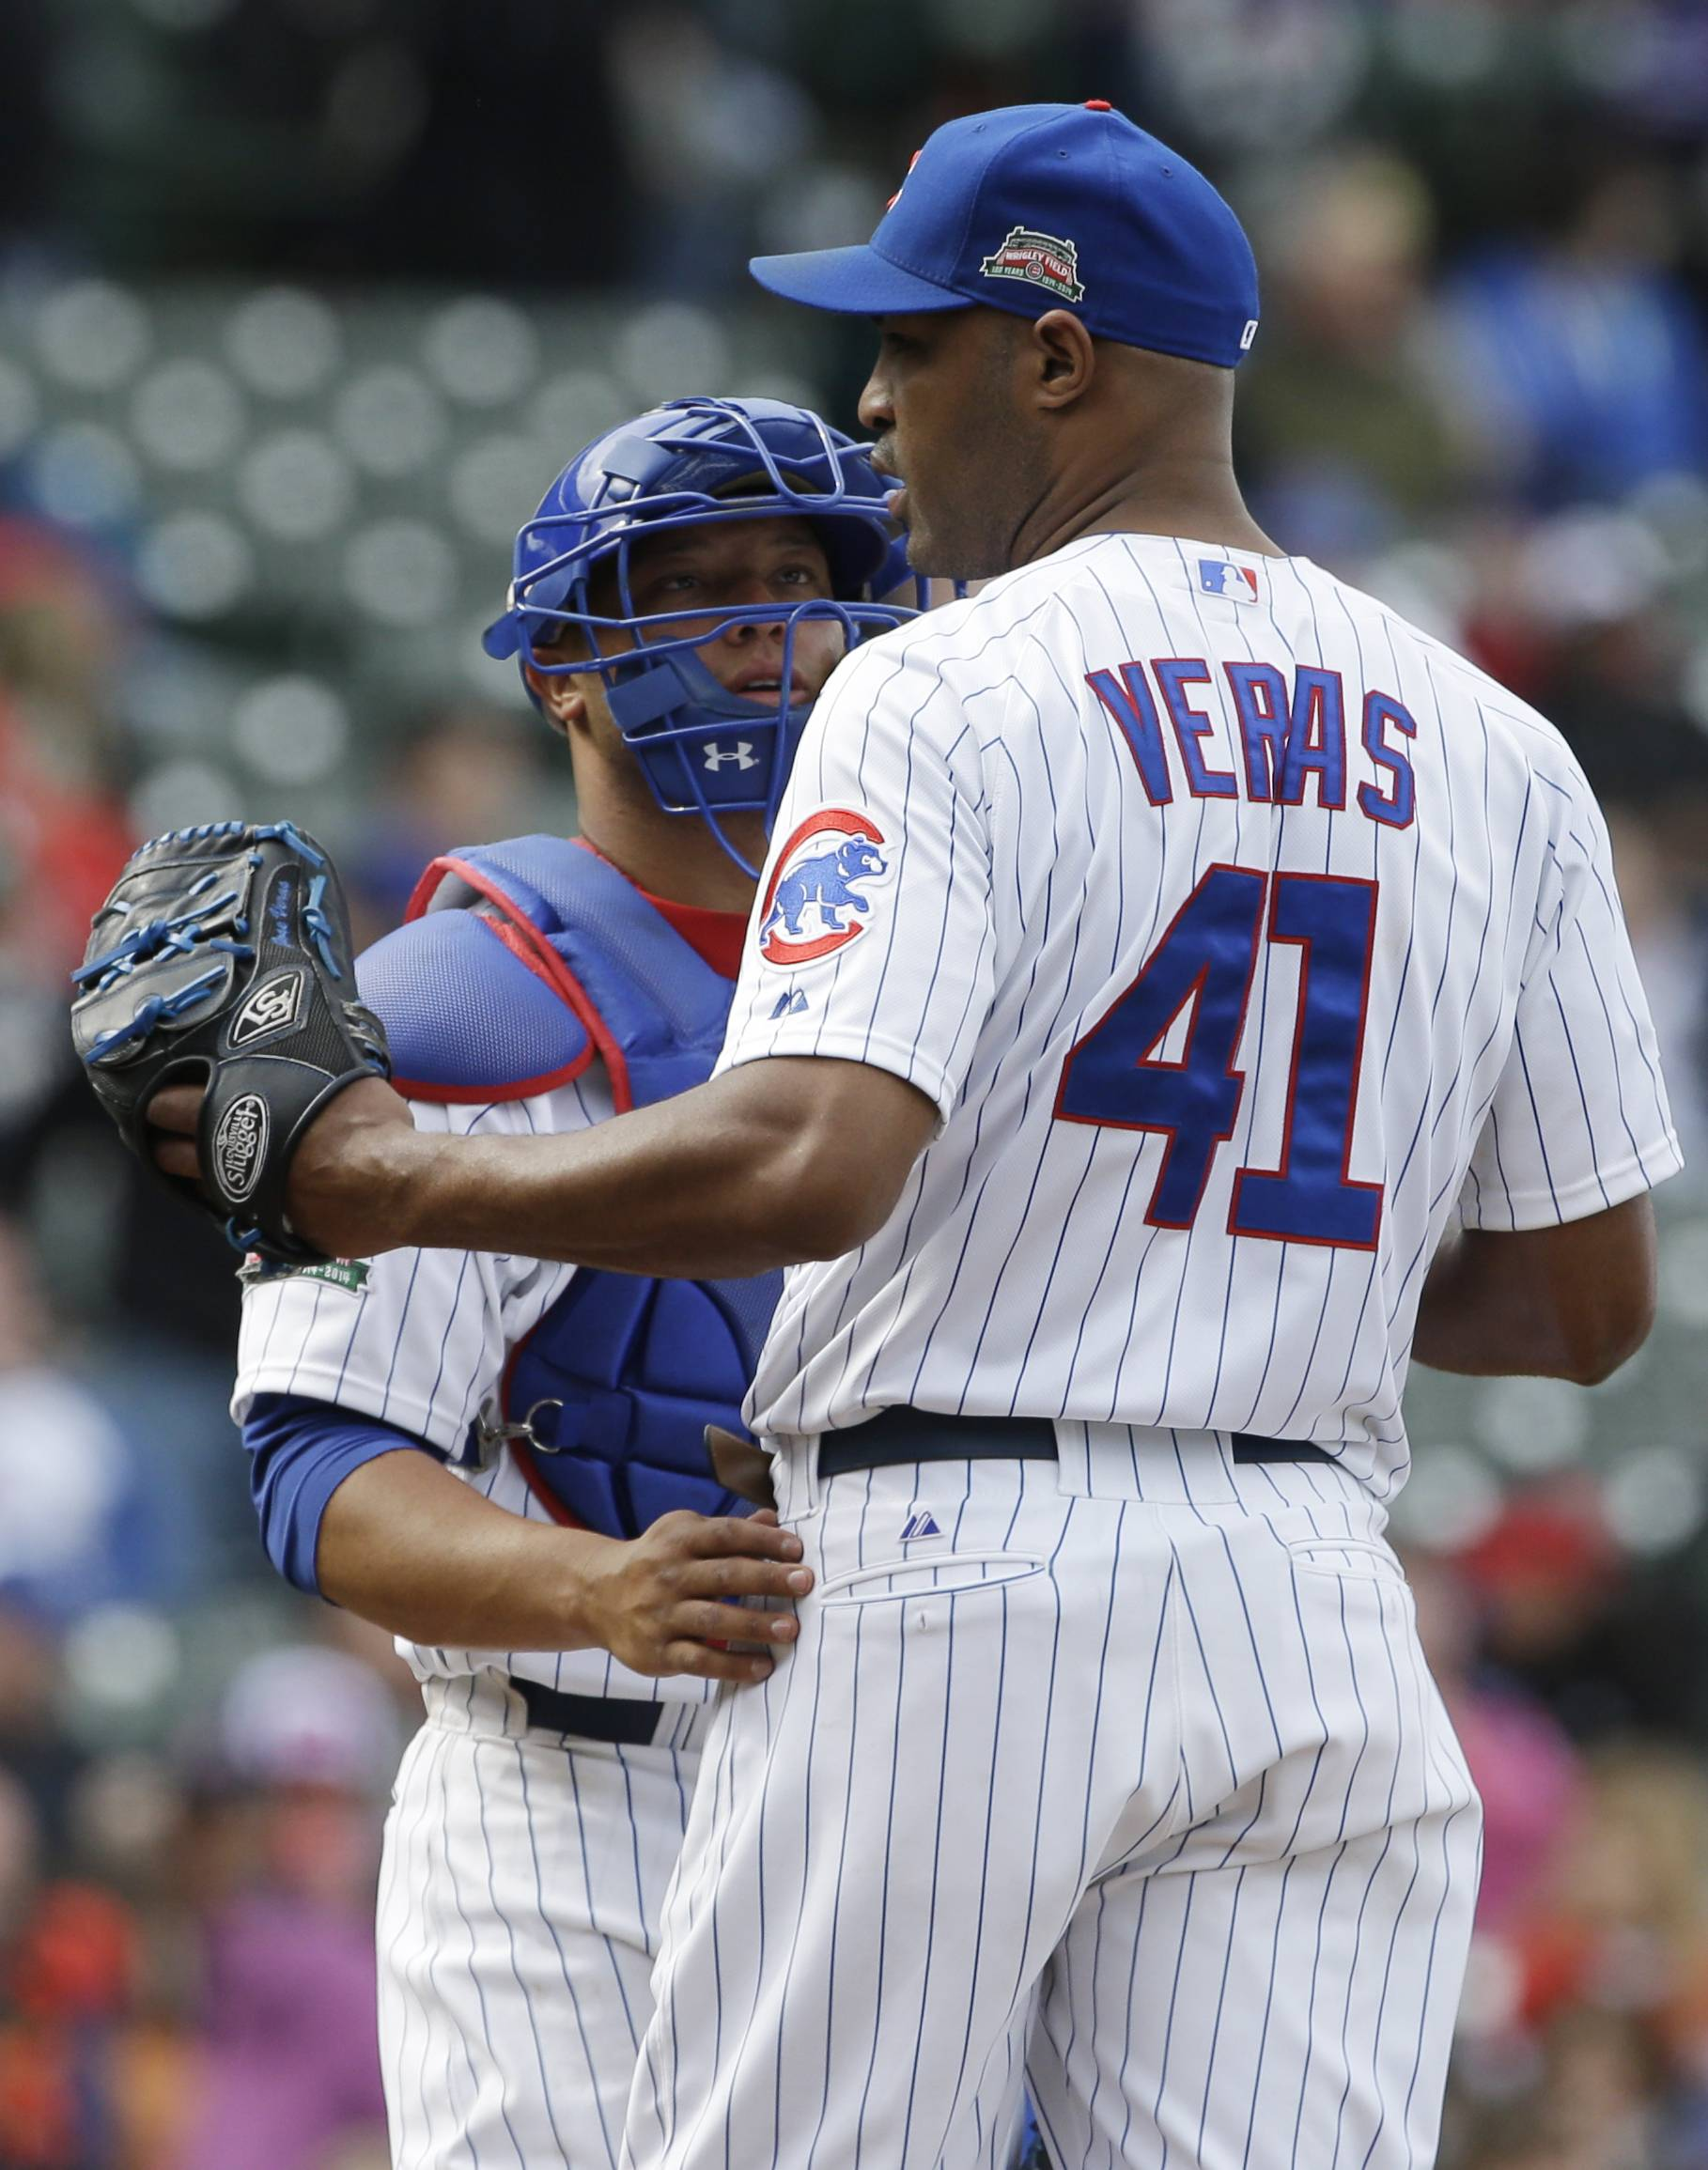 Veras out, Cubs' young relievers in